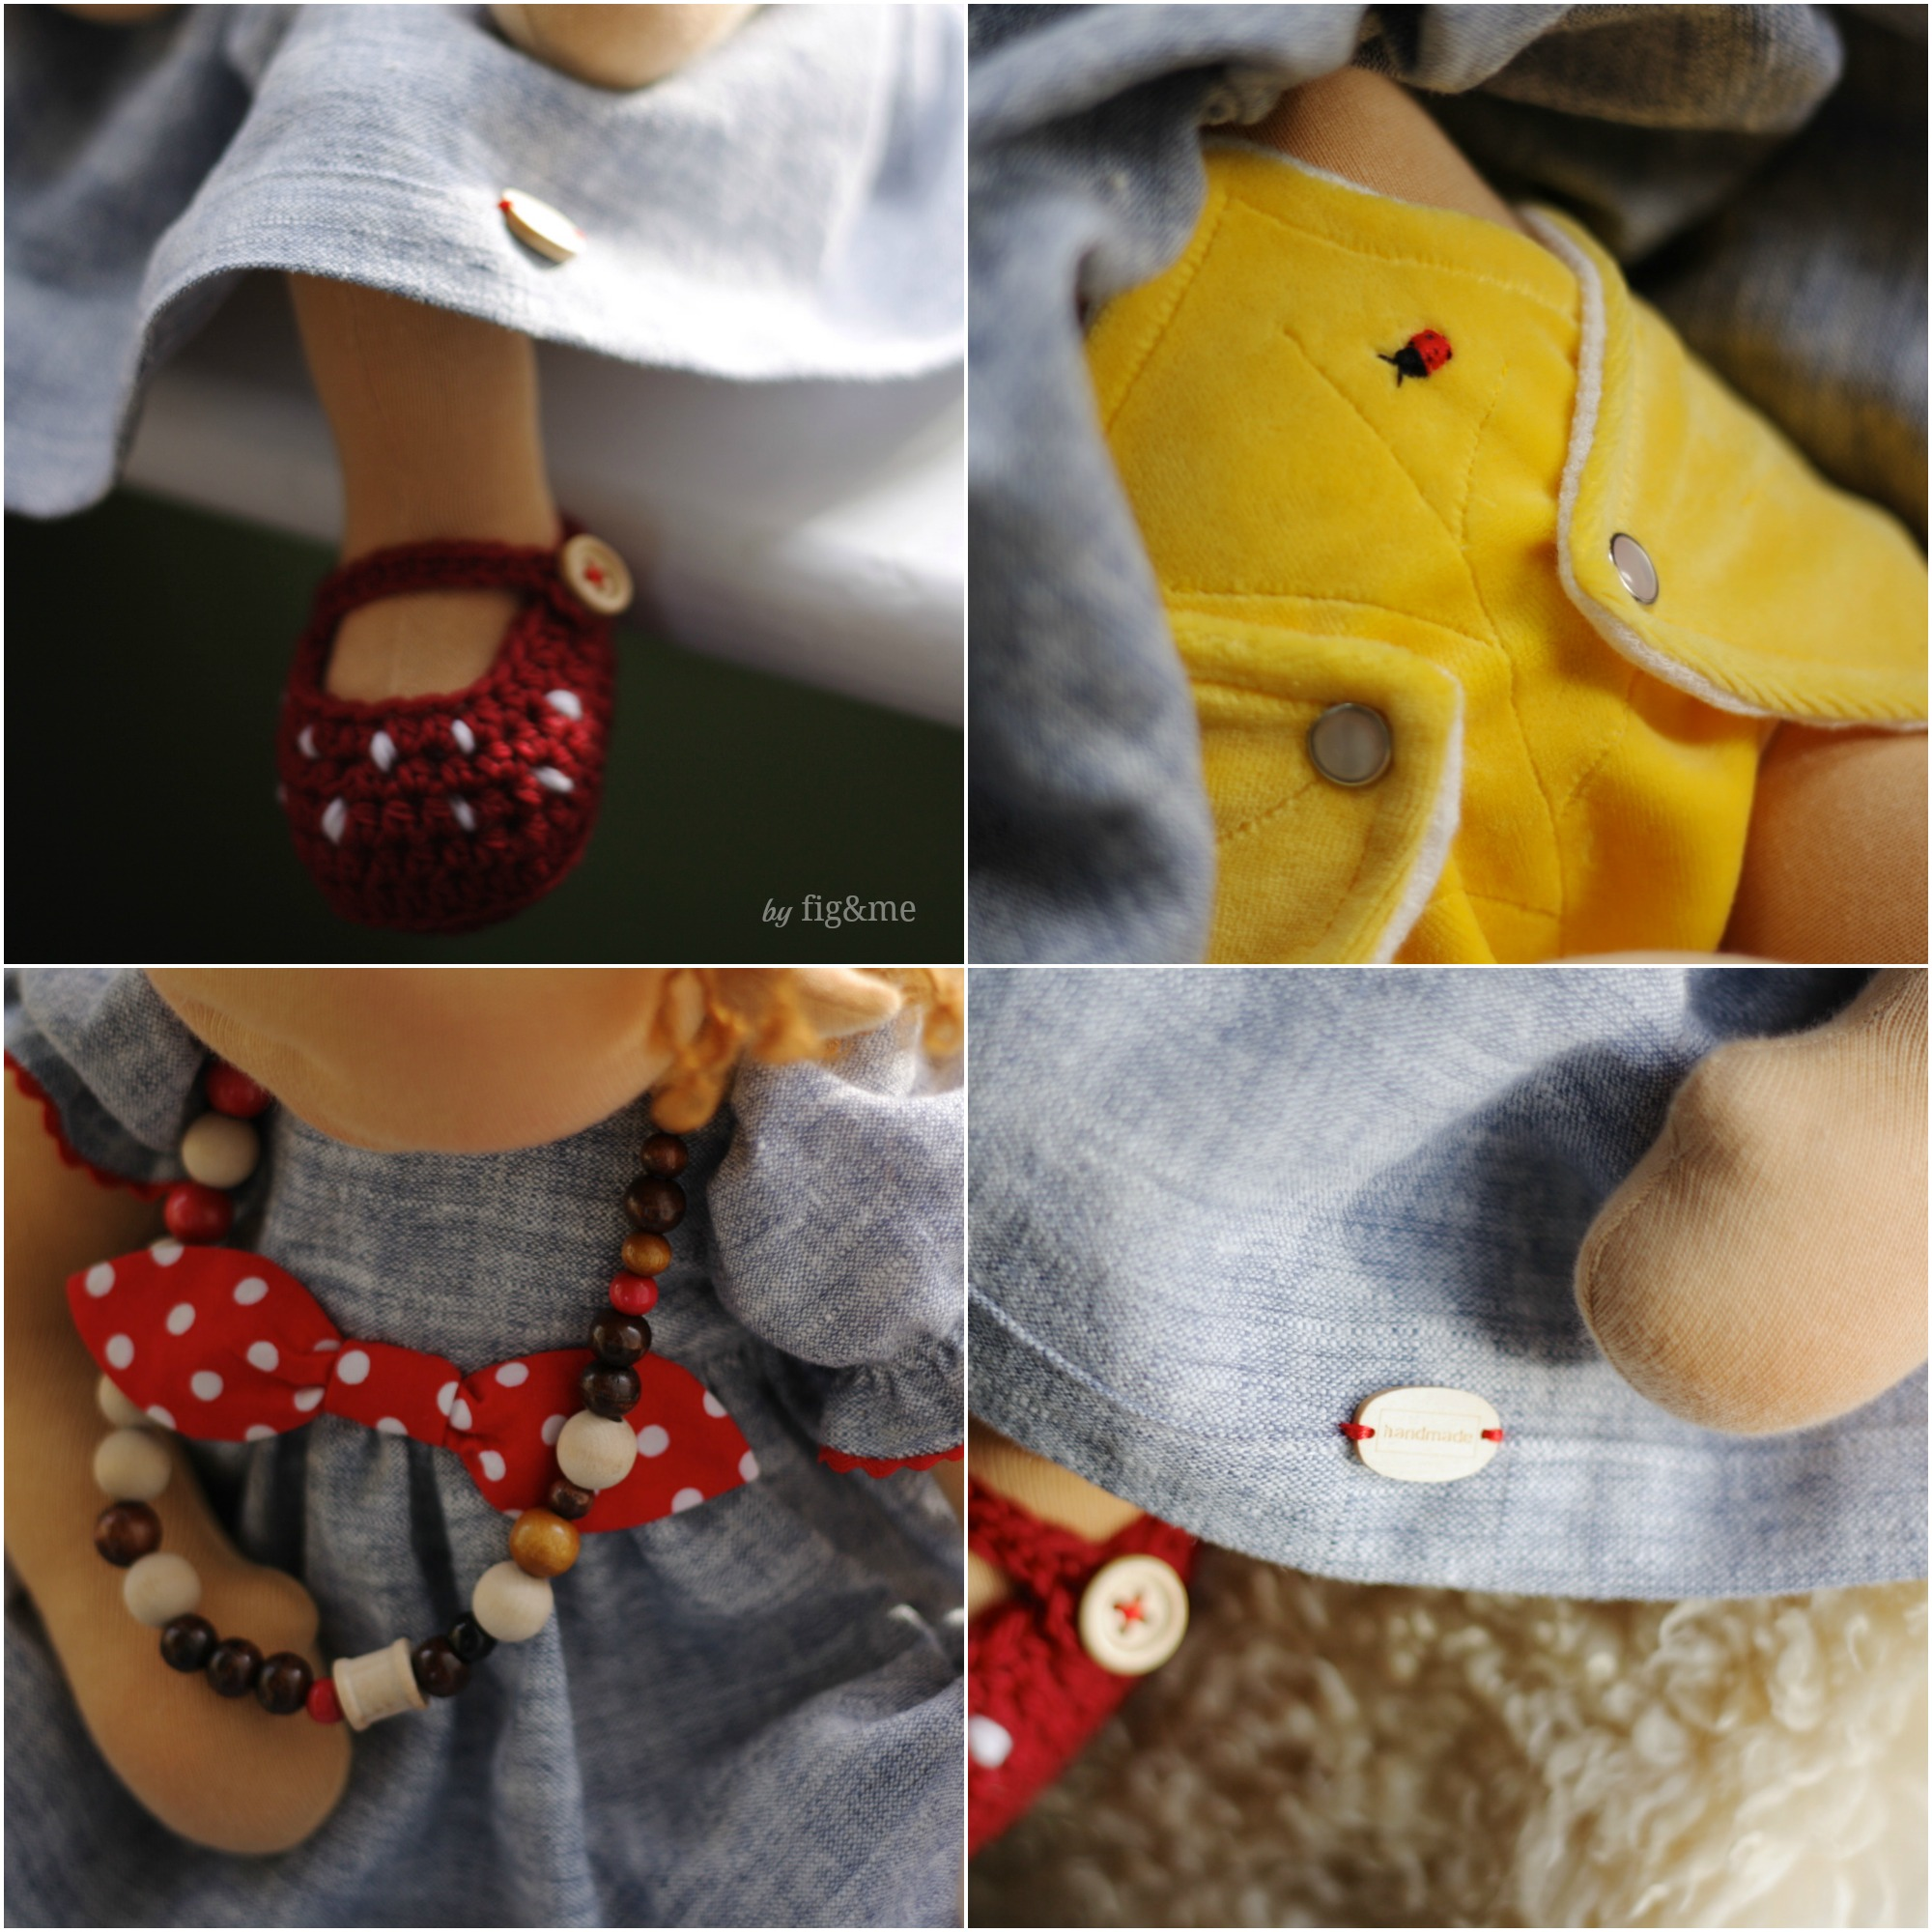 Little details of baby clothing.